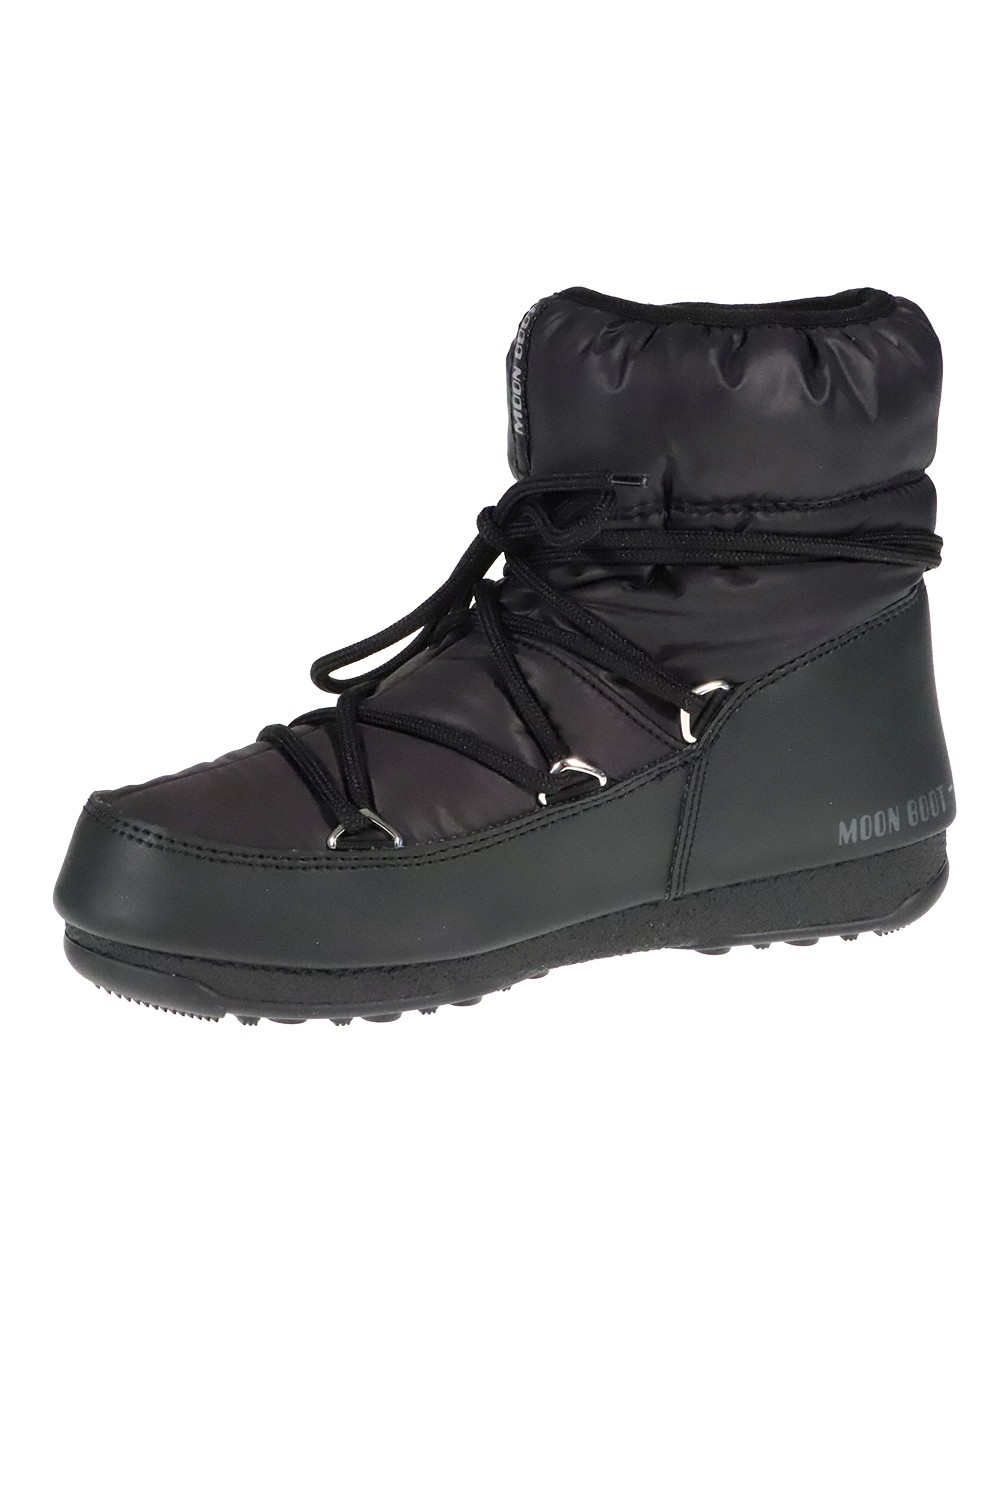 Moon Boot 24009300 Low Nylon WP 2 West East Black